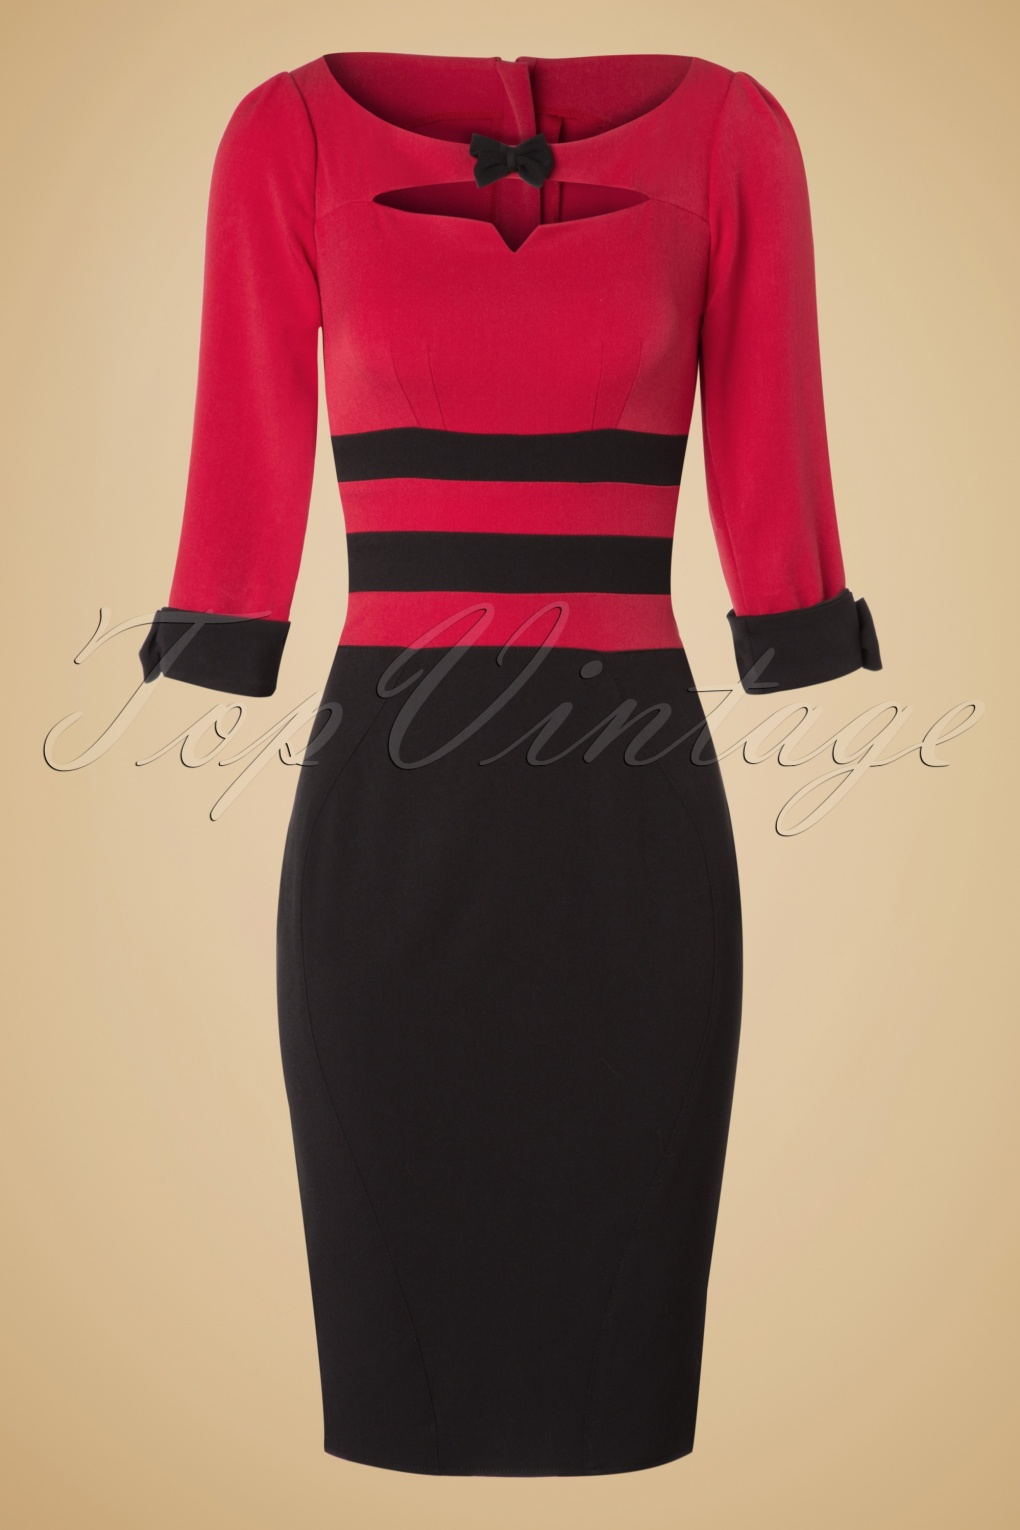 Free shipping and returns on Women's Red Dresses at nakedprogrammzce.cf